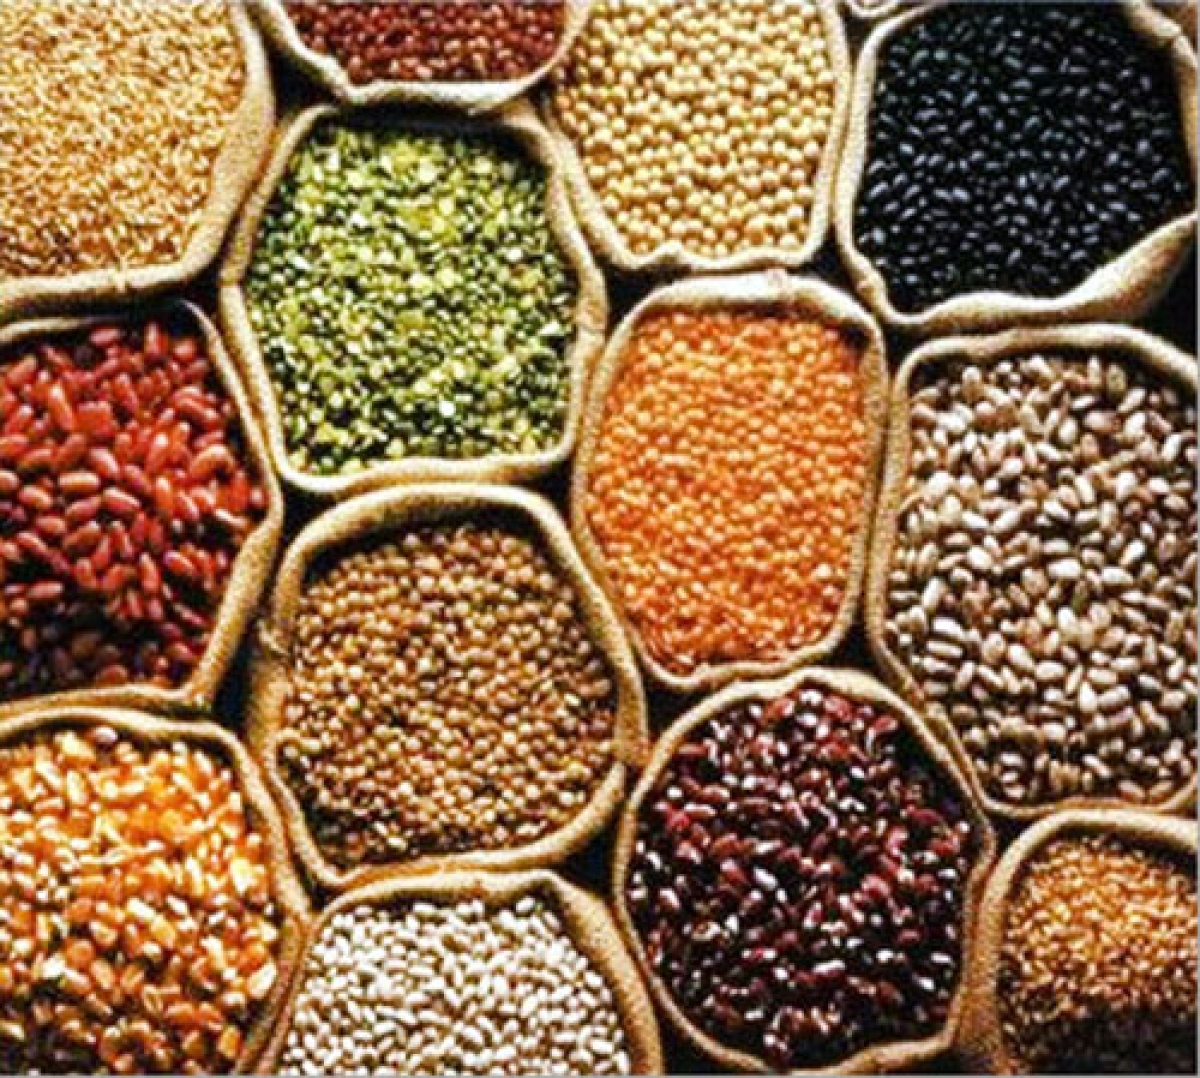 Central government to use India Post for pulses distribution